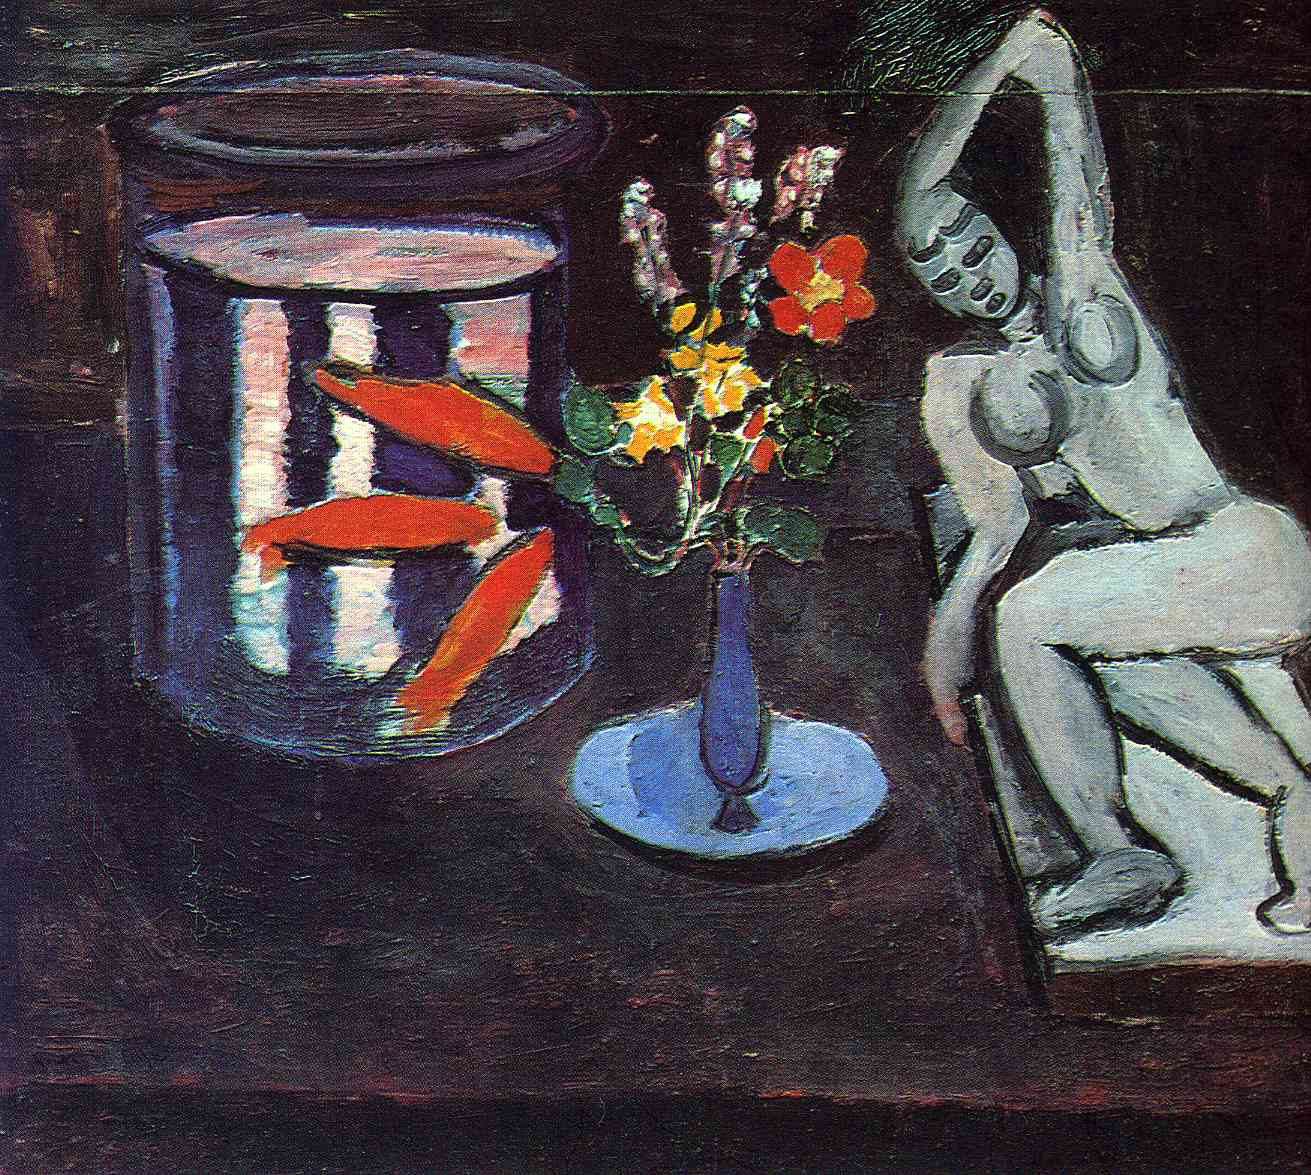 Henri Matisse, Fish tank in the room, 1912, Statens Museum for Kunst, Copenhagen, matisse with goldfish